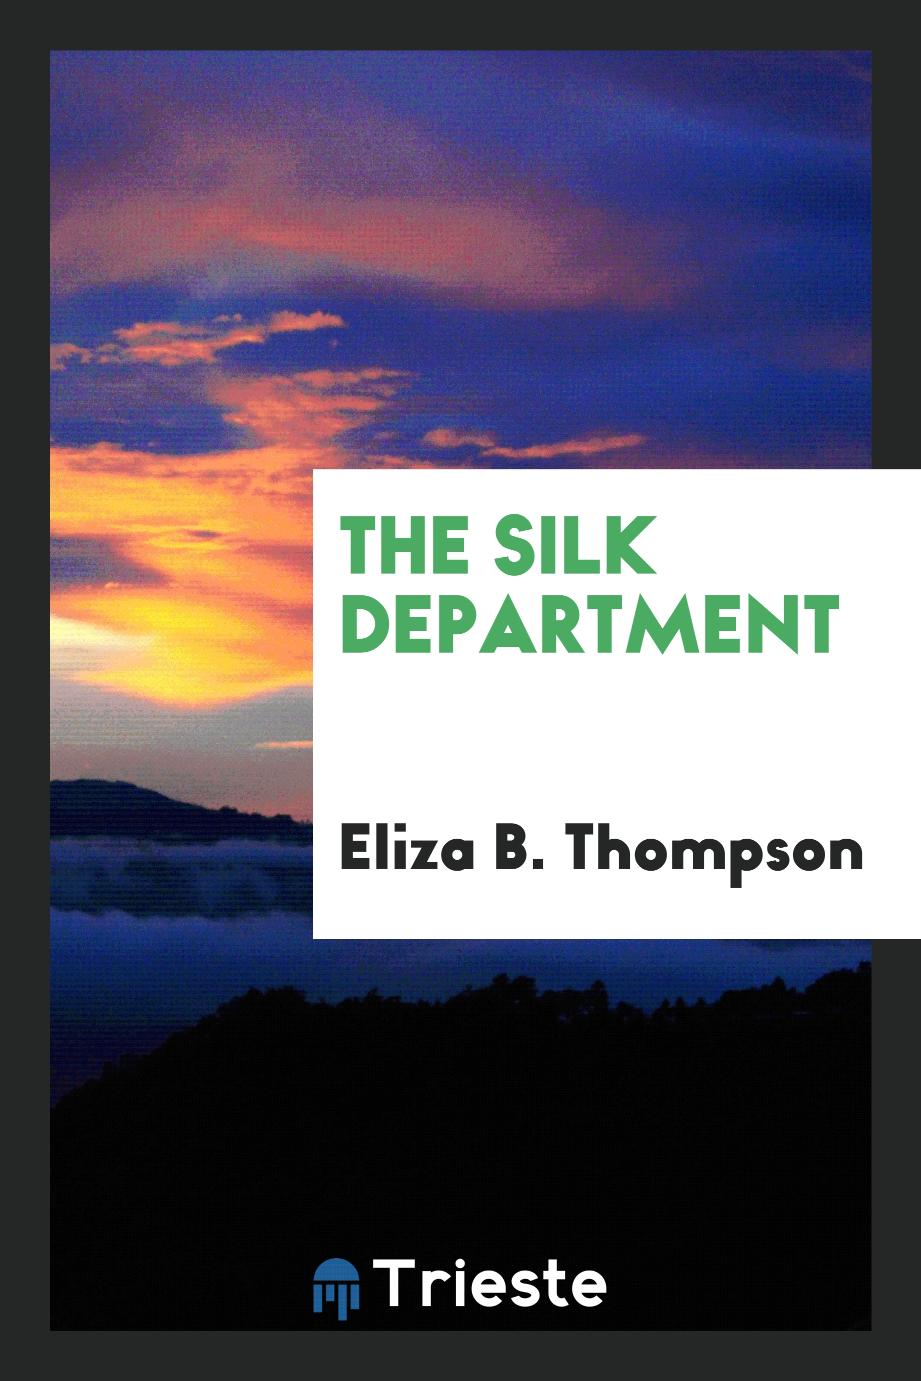 The silk department